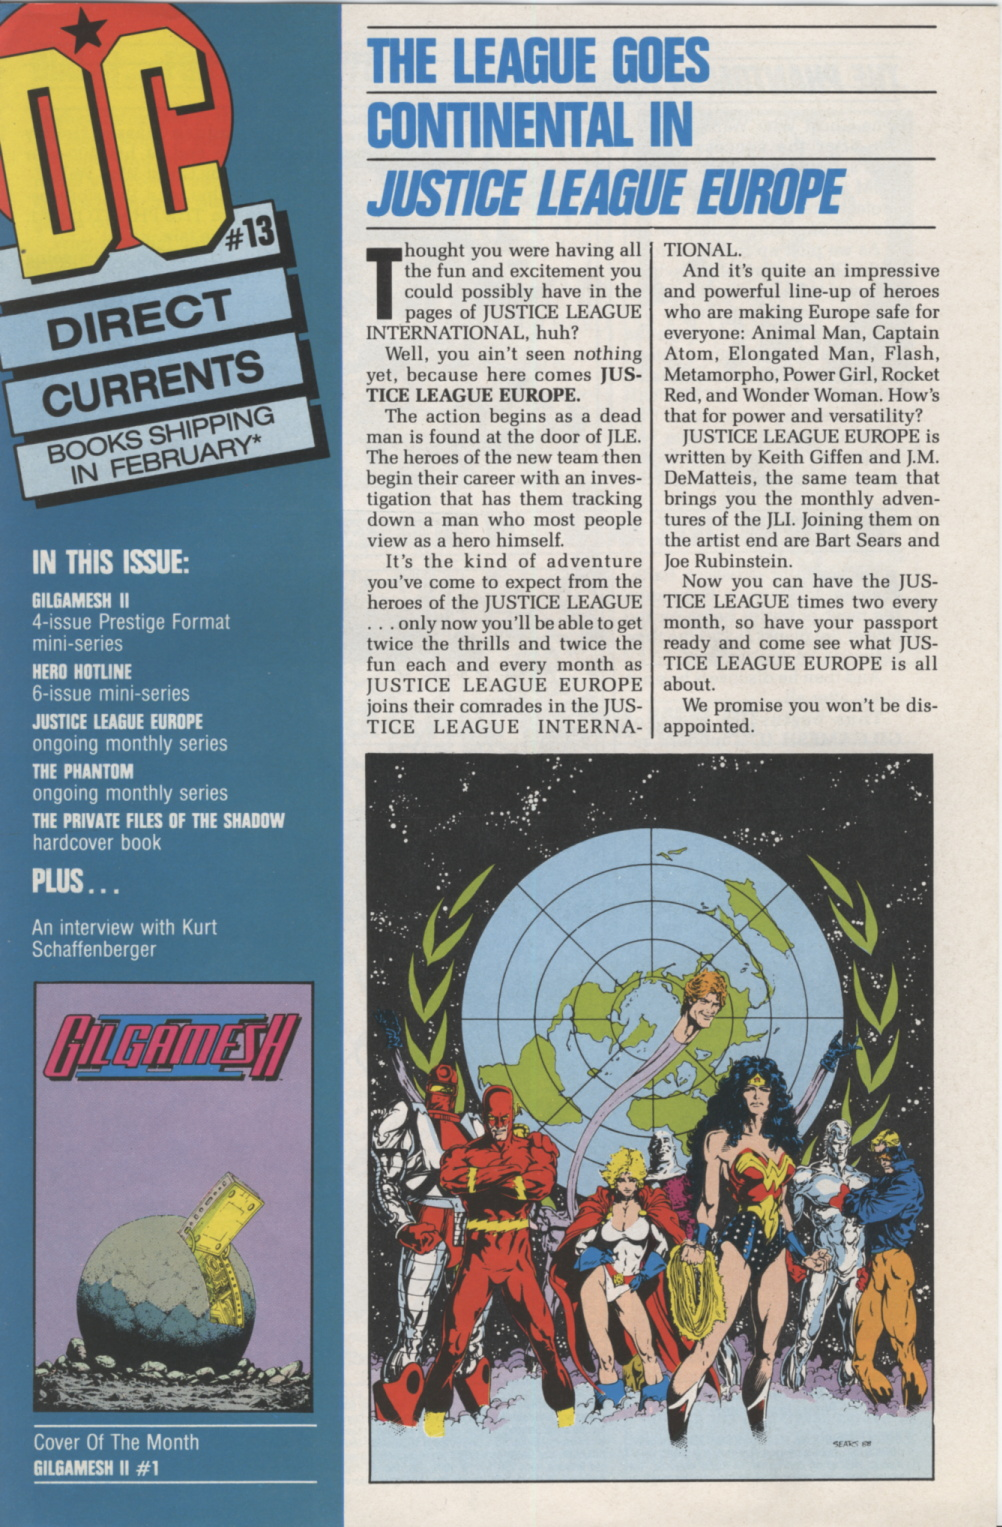 Time Capsule: DC Direct Currents 13, January 1989